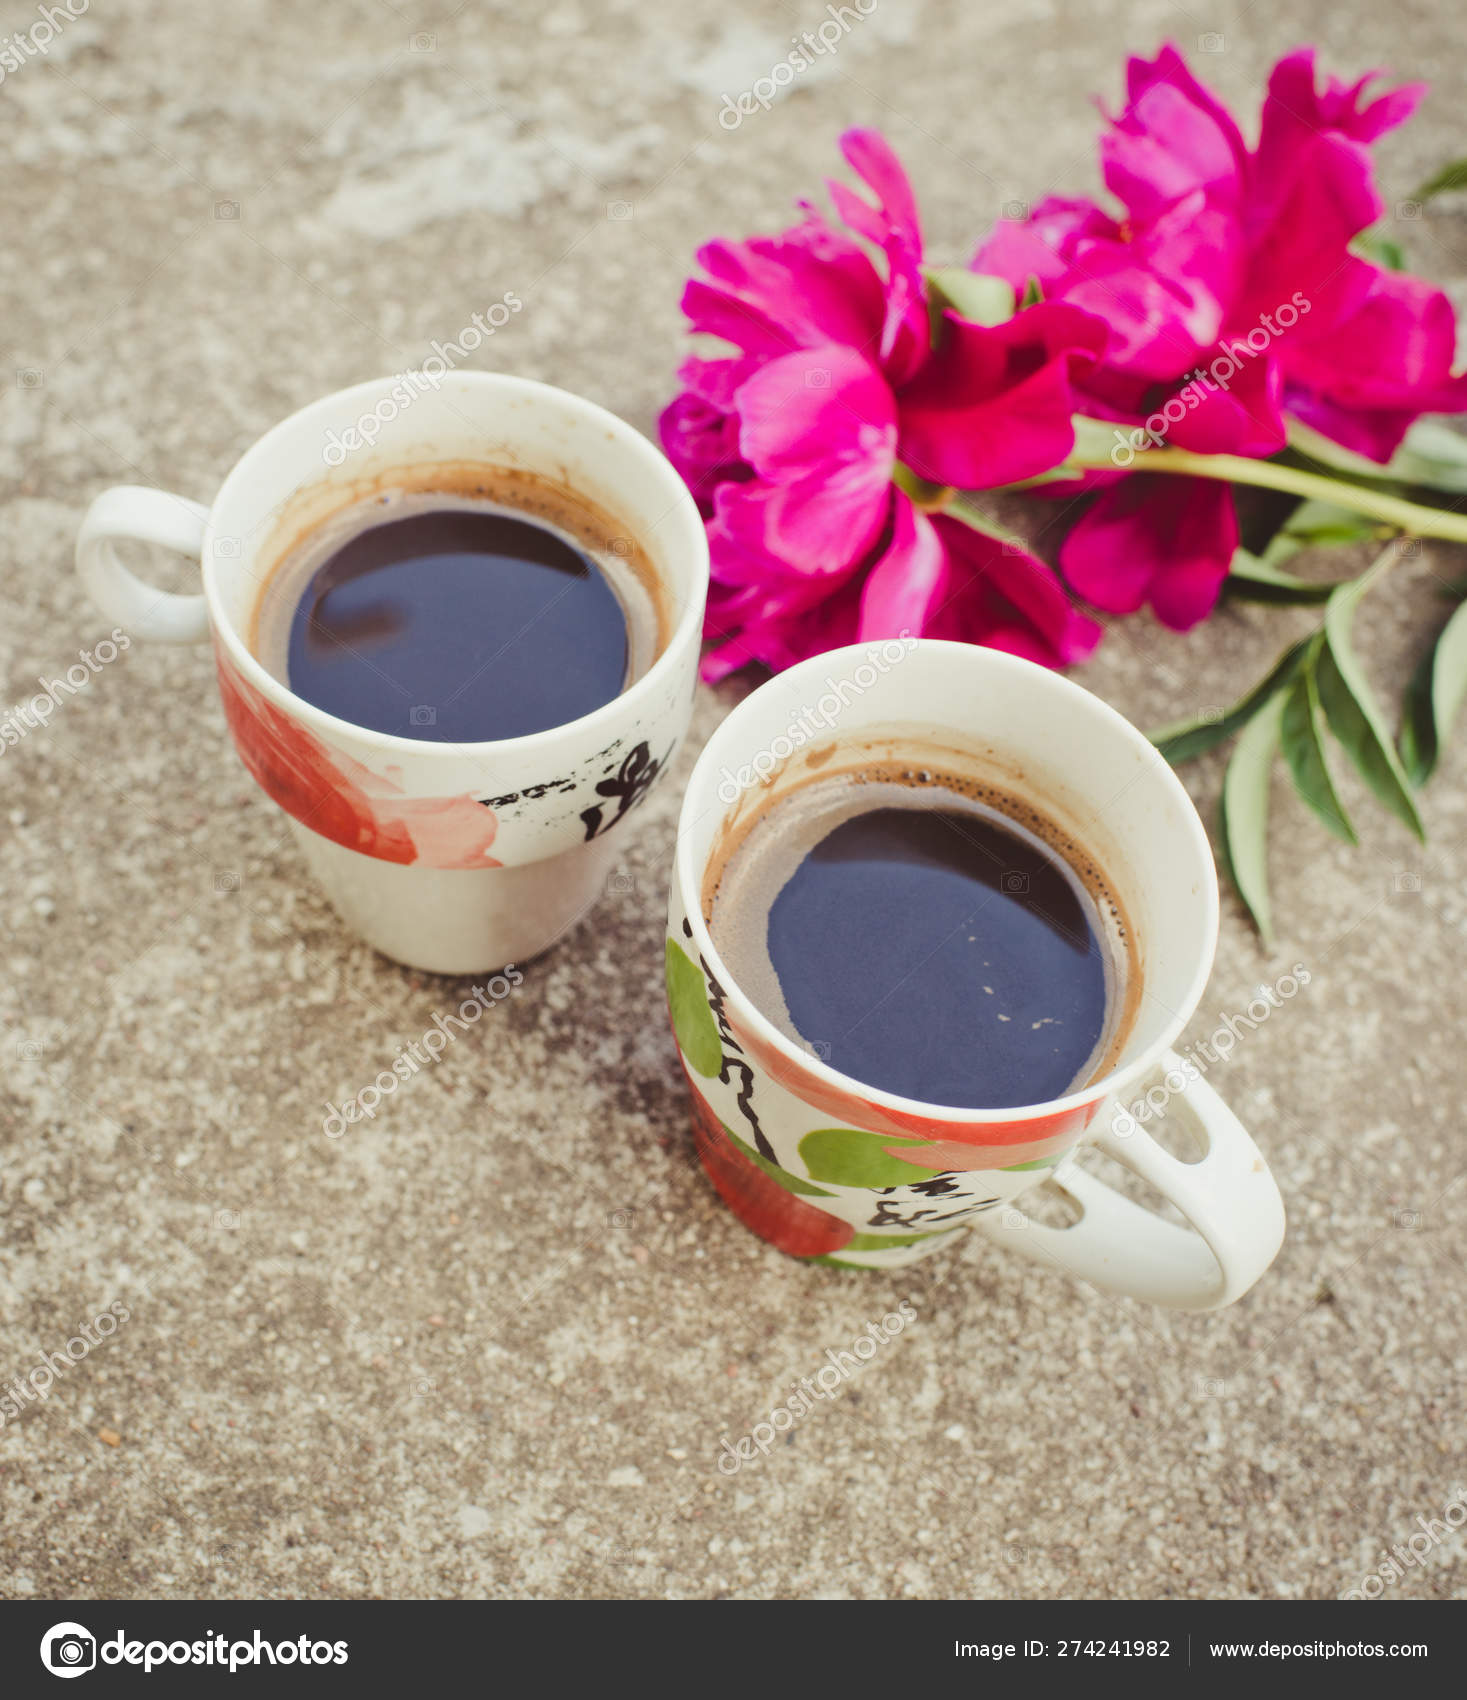 Beautiful Flowers Two Cups Coffee Close Stock Photo Image By C Bulatova 274241982